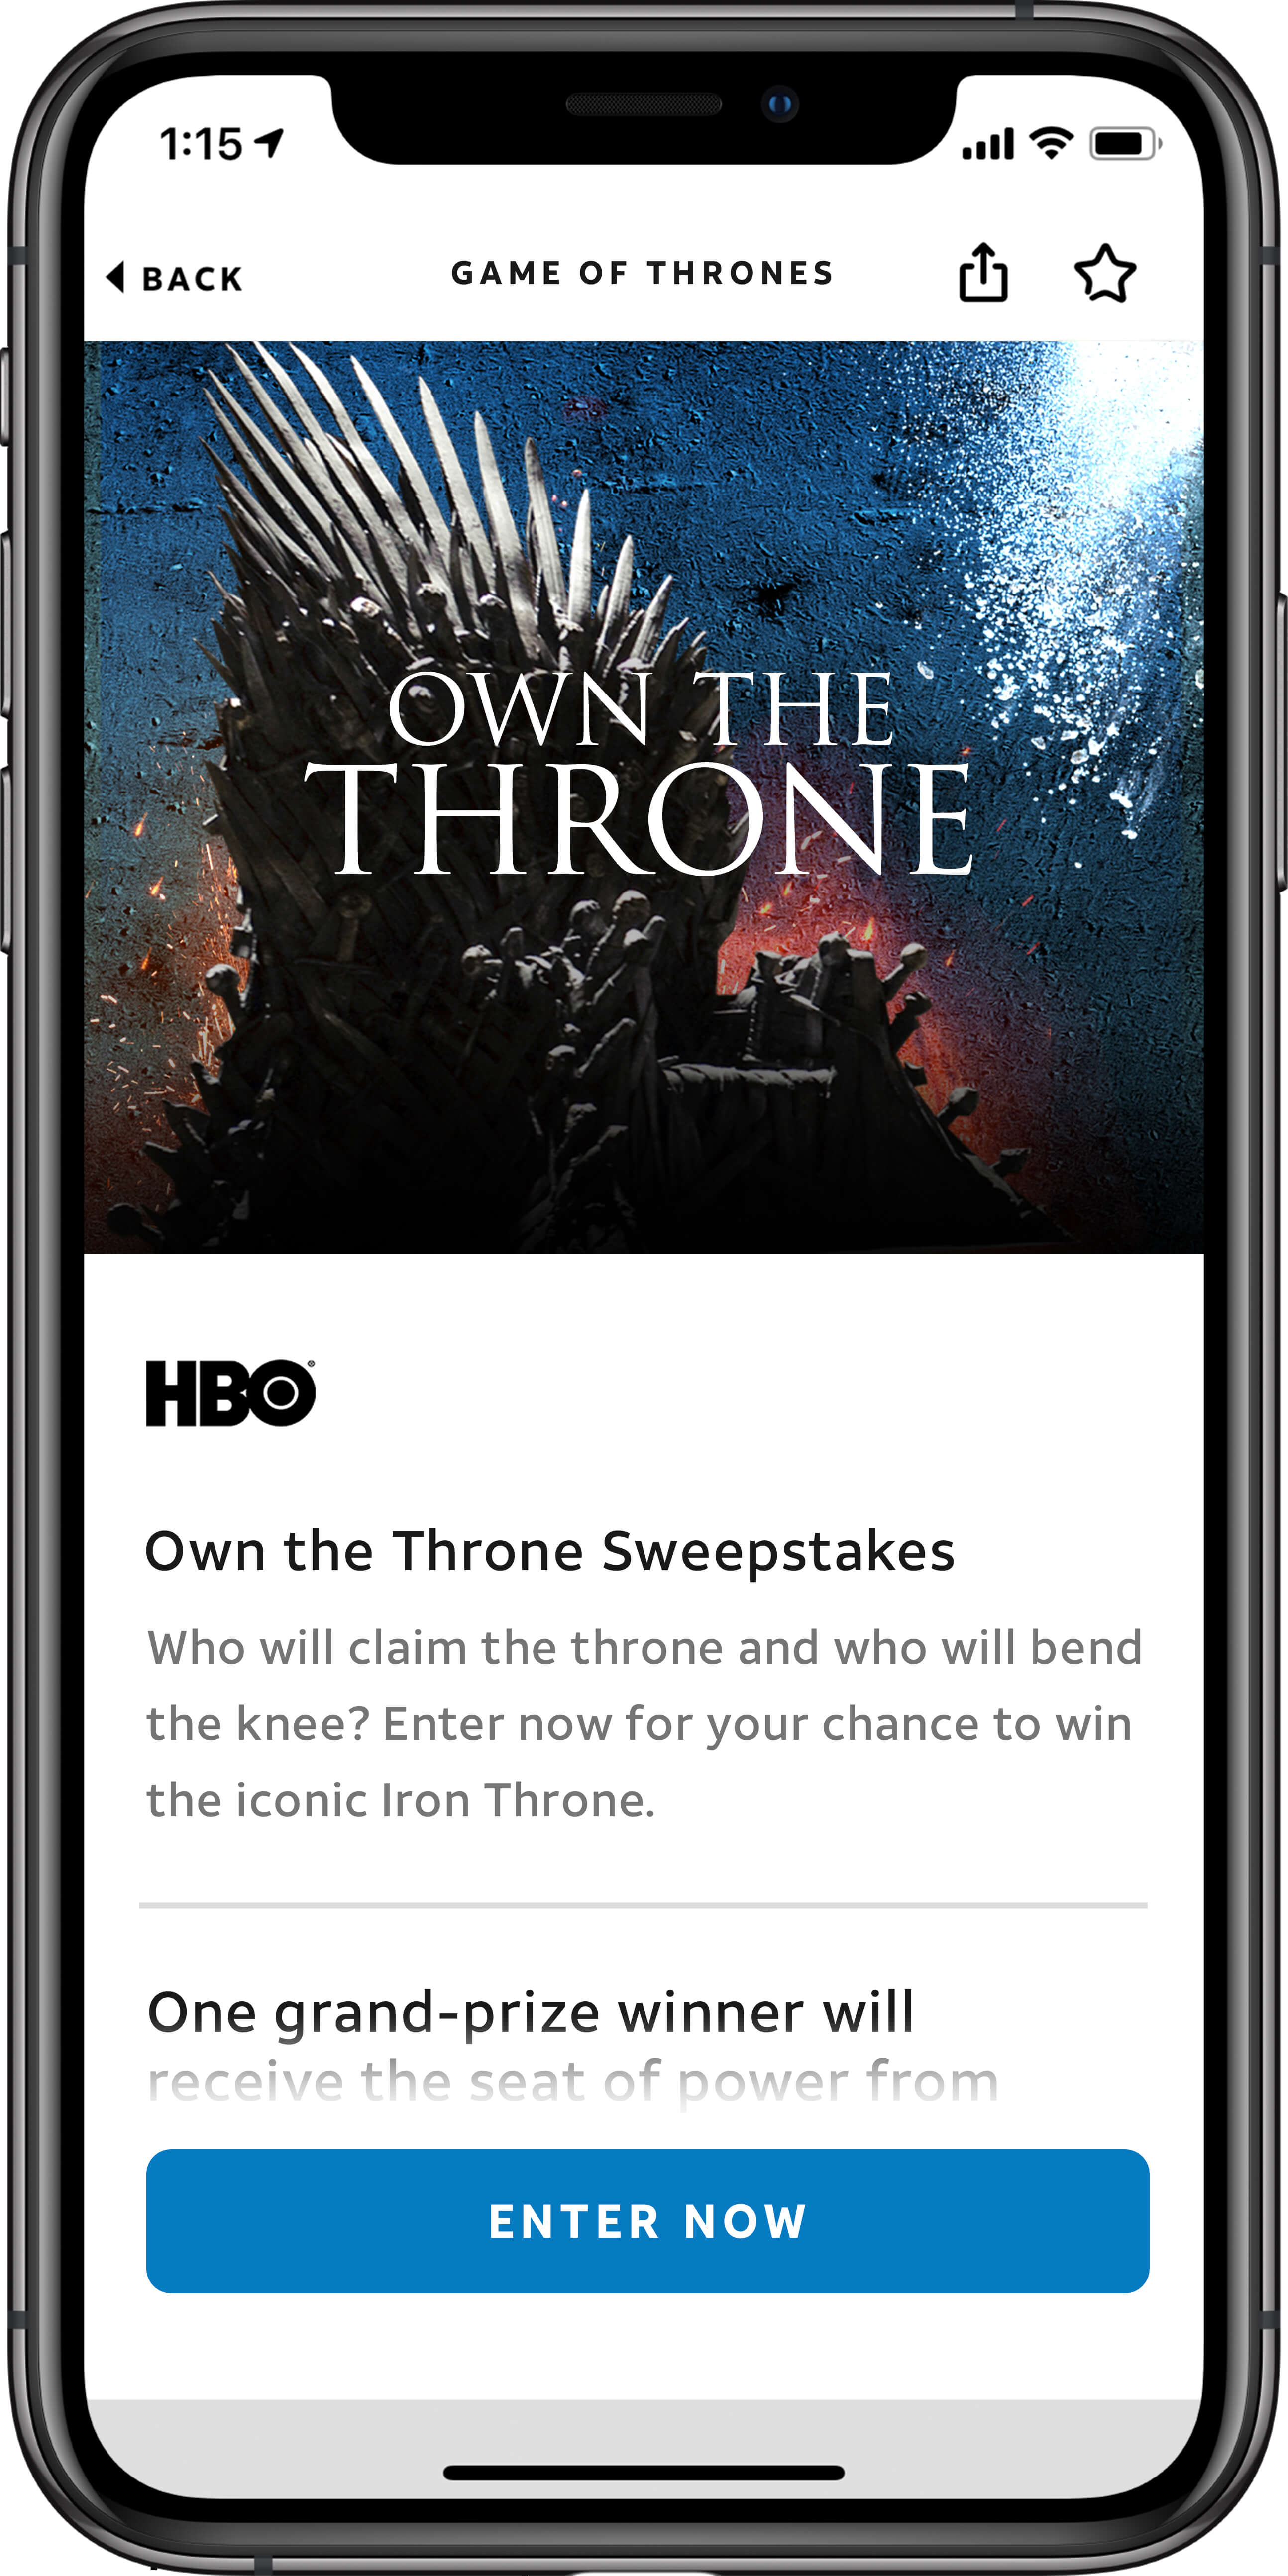 AT&T THANKS®: Own the Throne